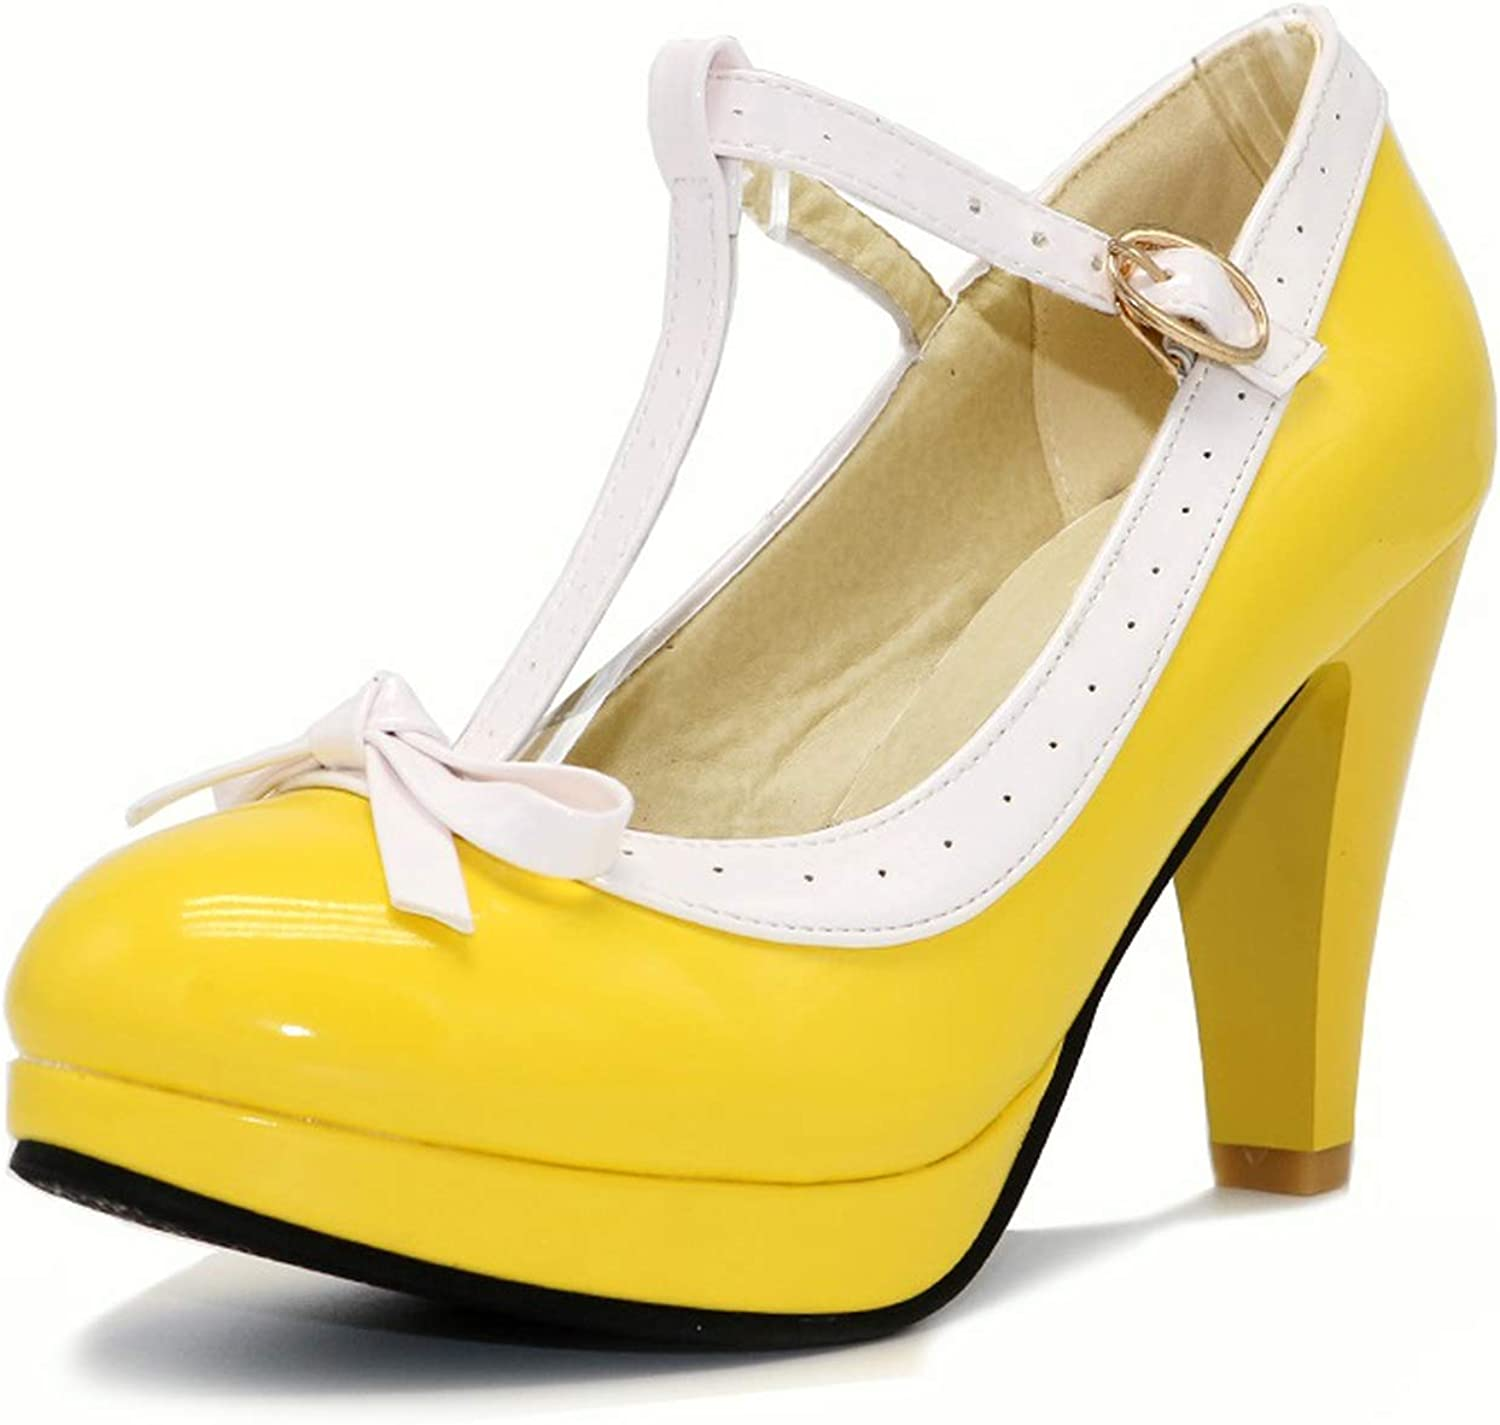 Plus Size 32-48 Women Summer High Heels shoes T Strap Bow Daily Work Dress Footwear,Yellow,12.5